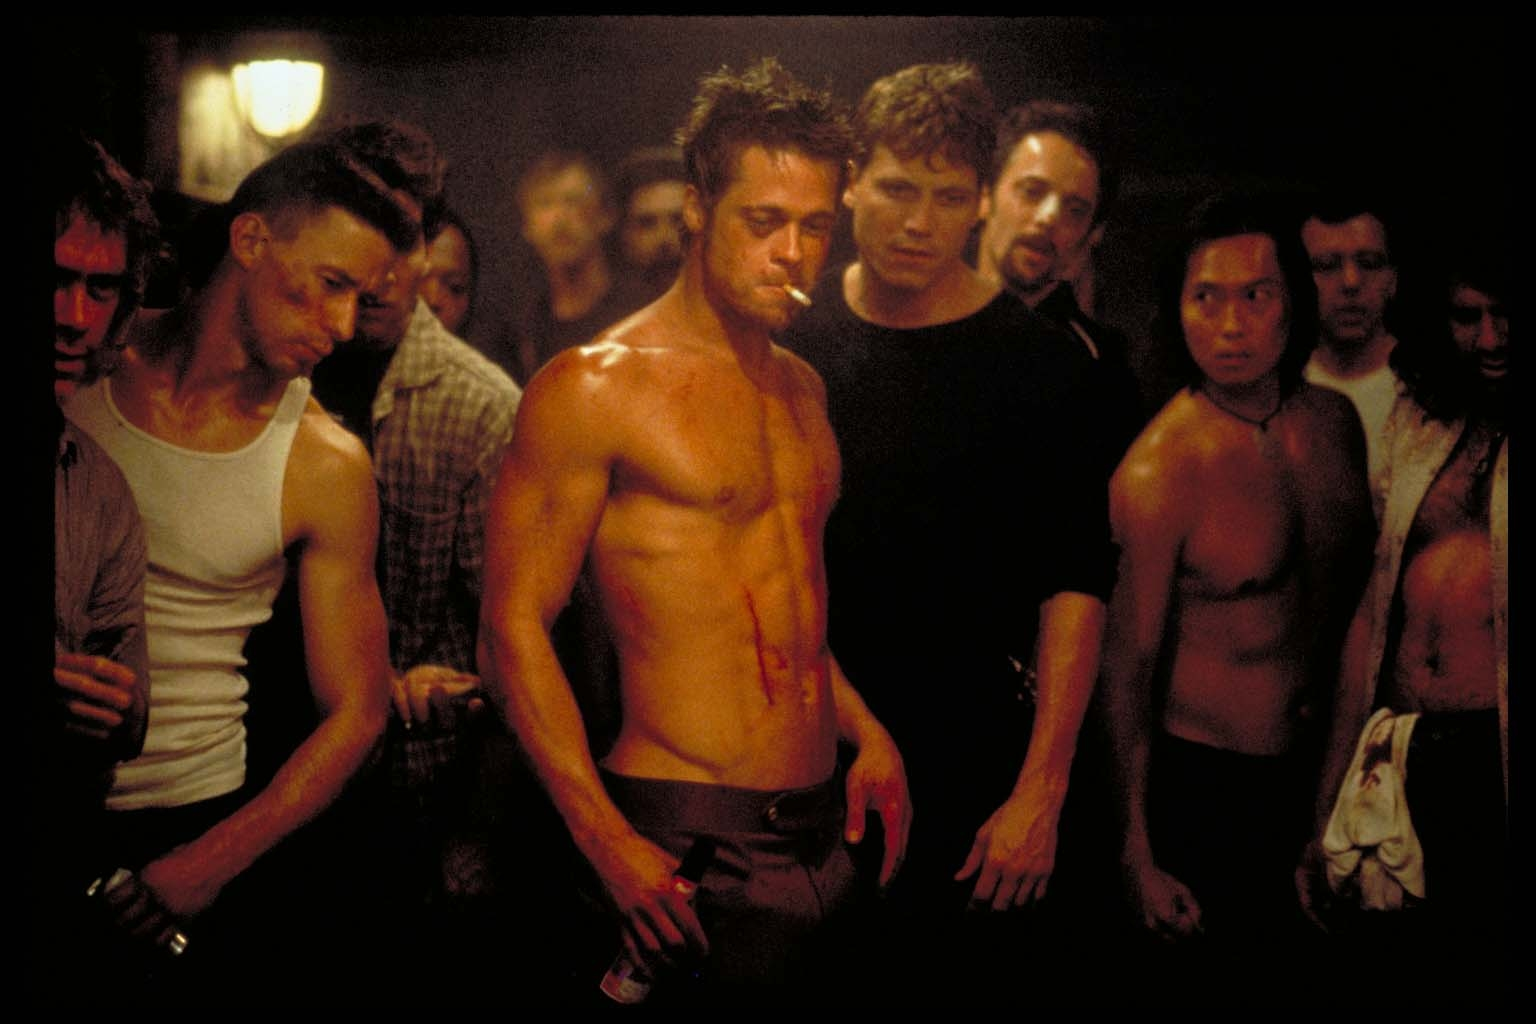 59870-fight-club-fight-club-screenshot